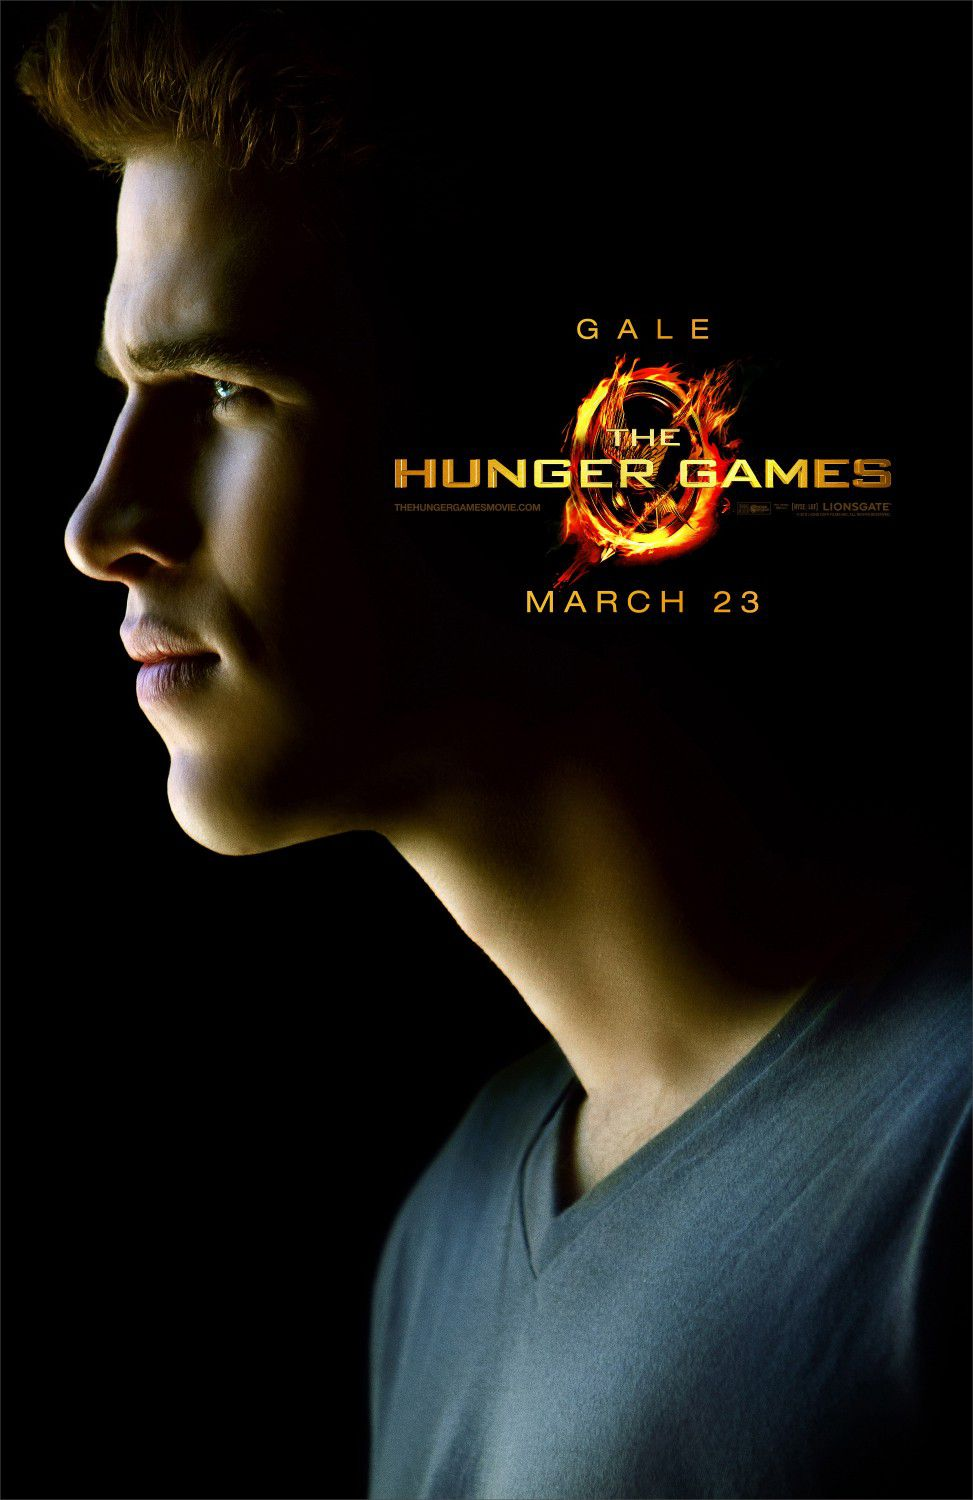 Hunger Games - Gale